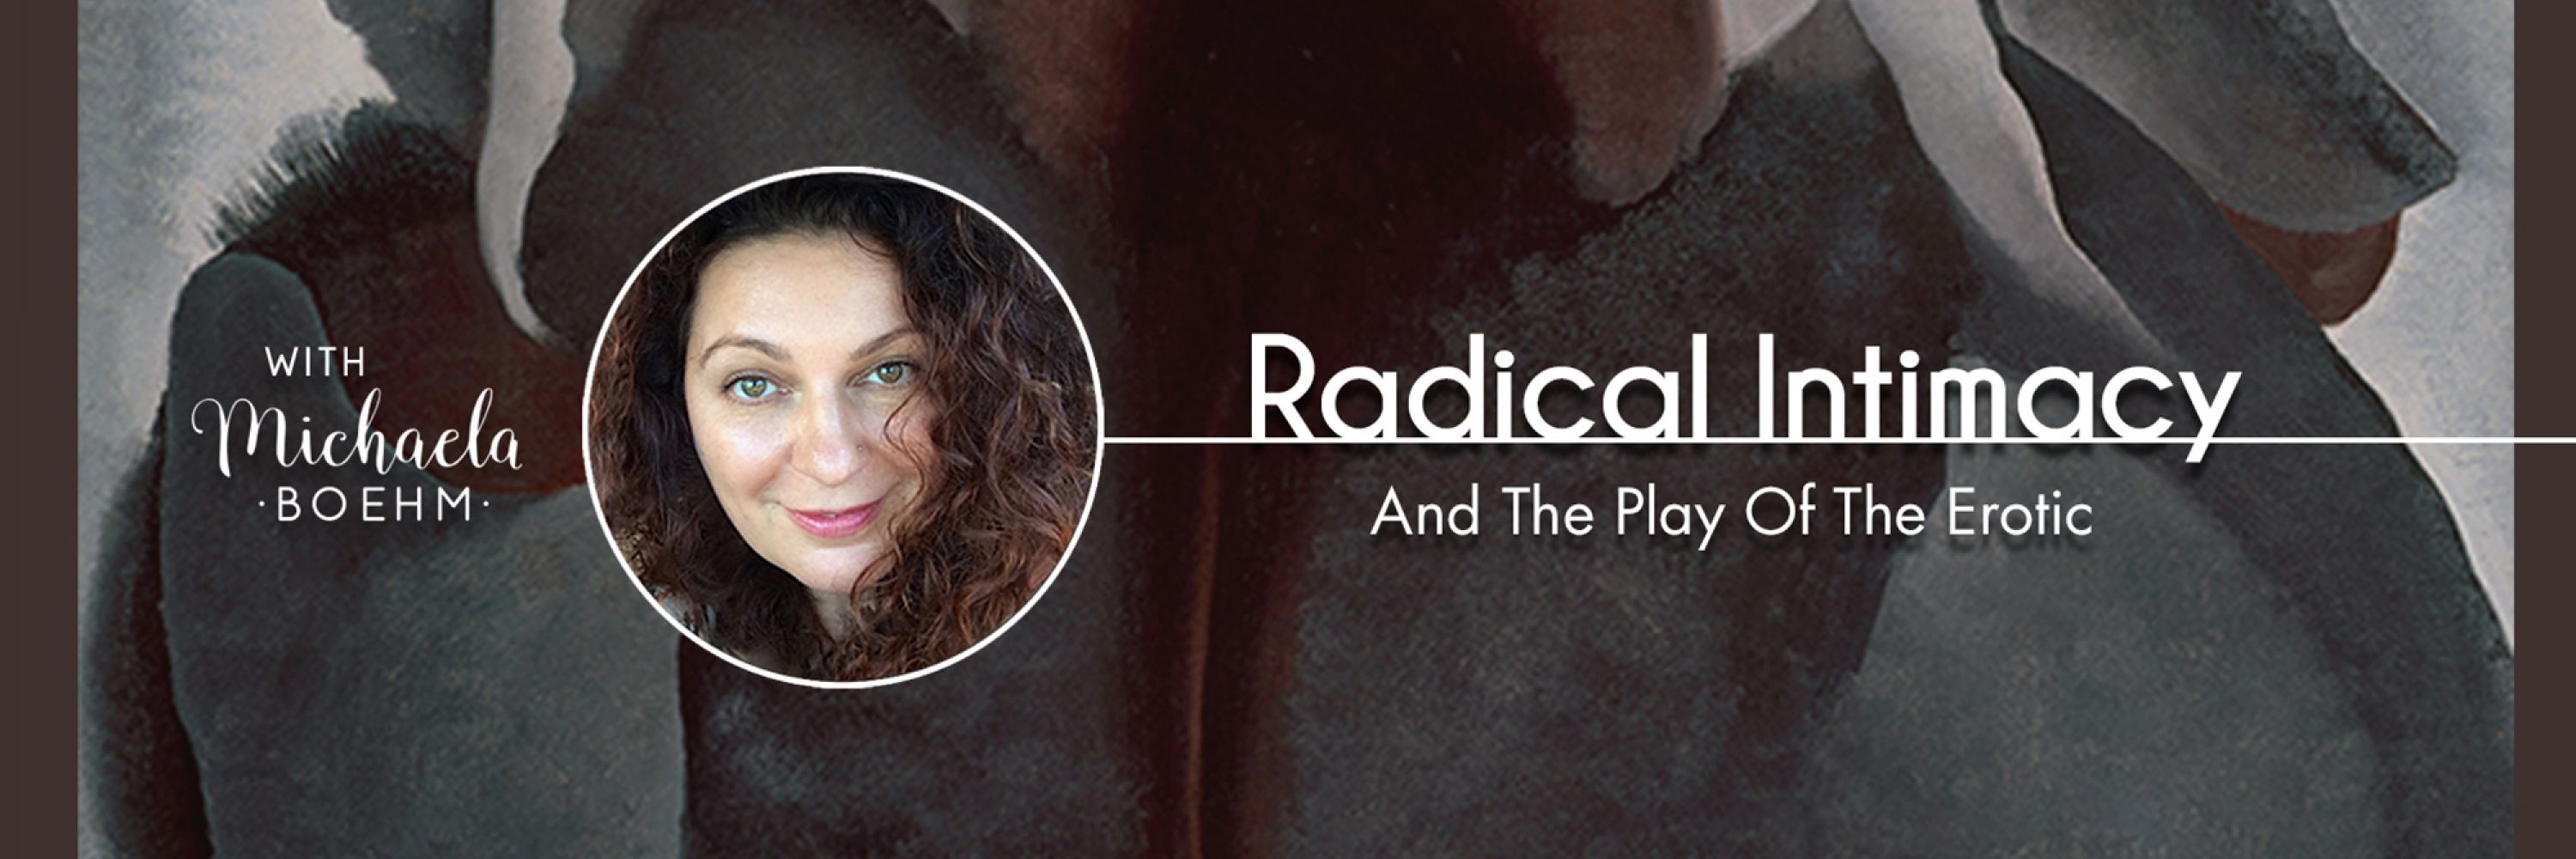 Radical Intimacy And The Play Of The Erotic